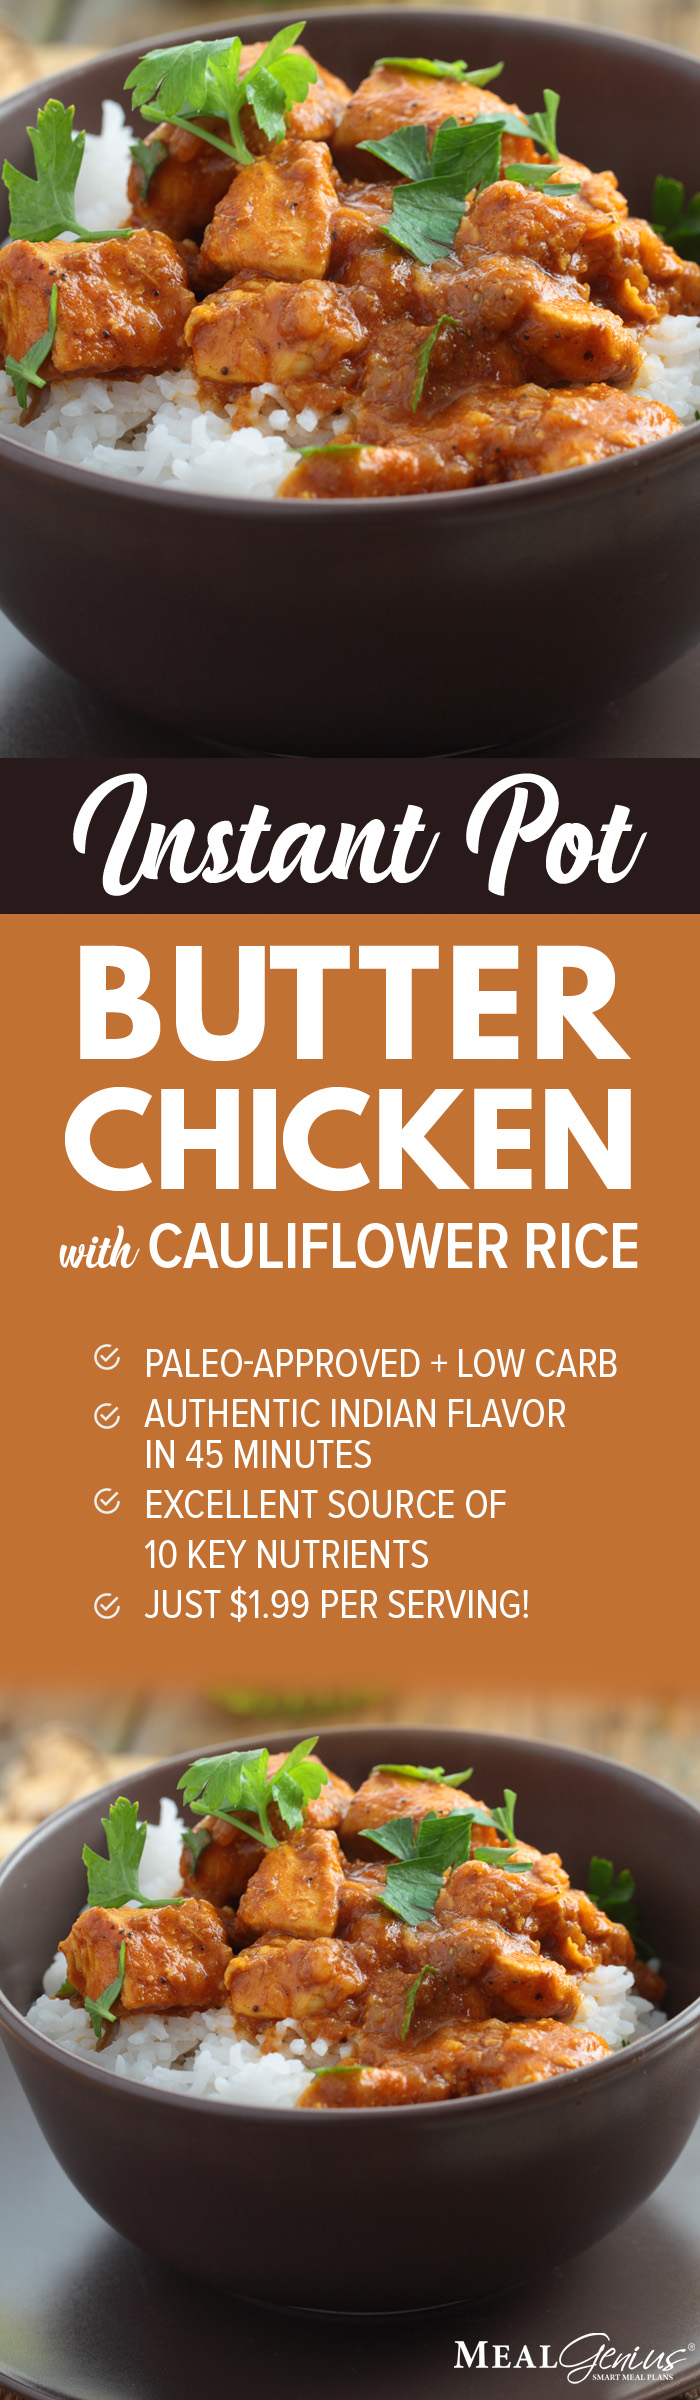 Instant Pot Butter Chicken with Cauliflower Rice - Meal Genius